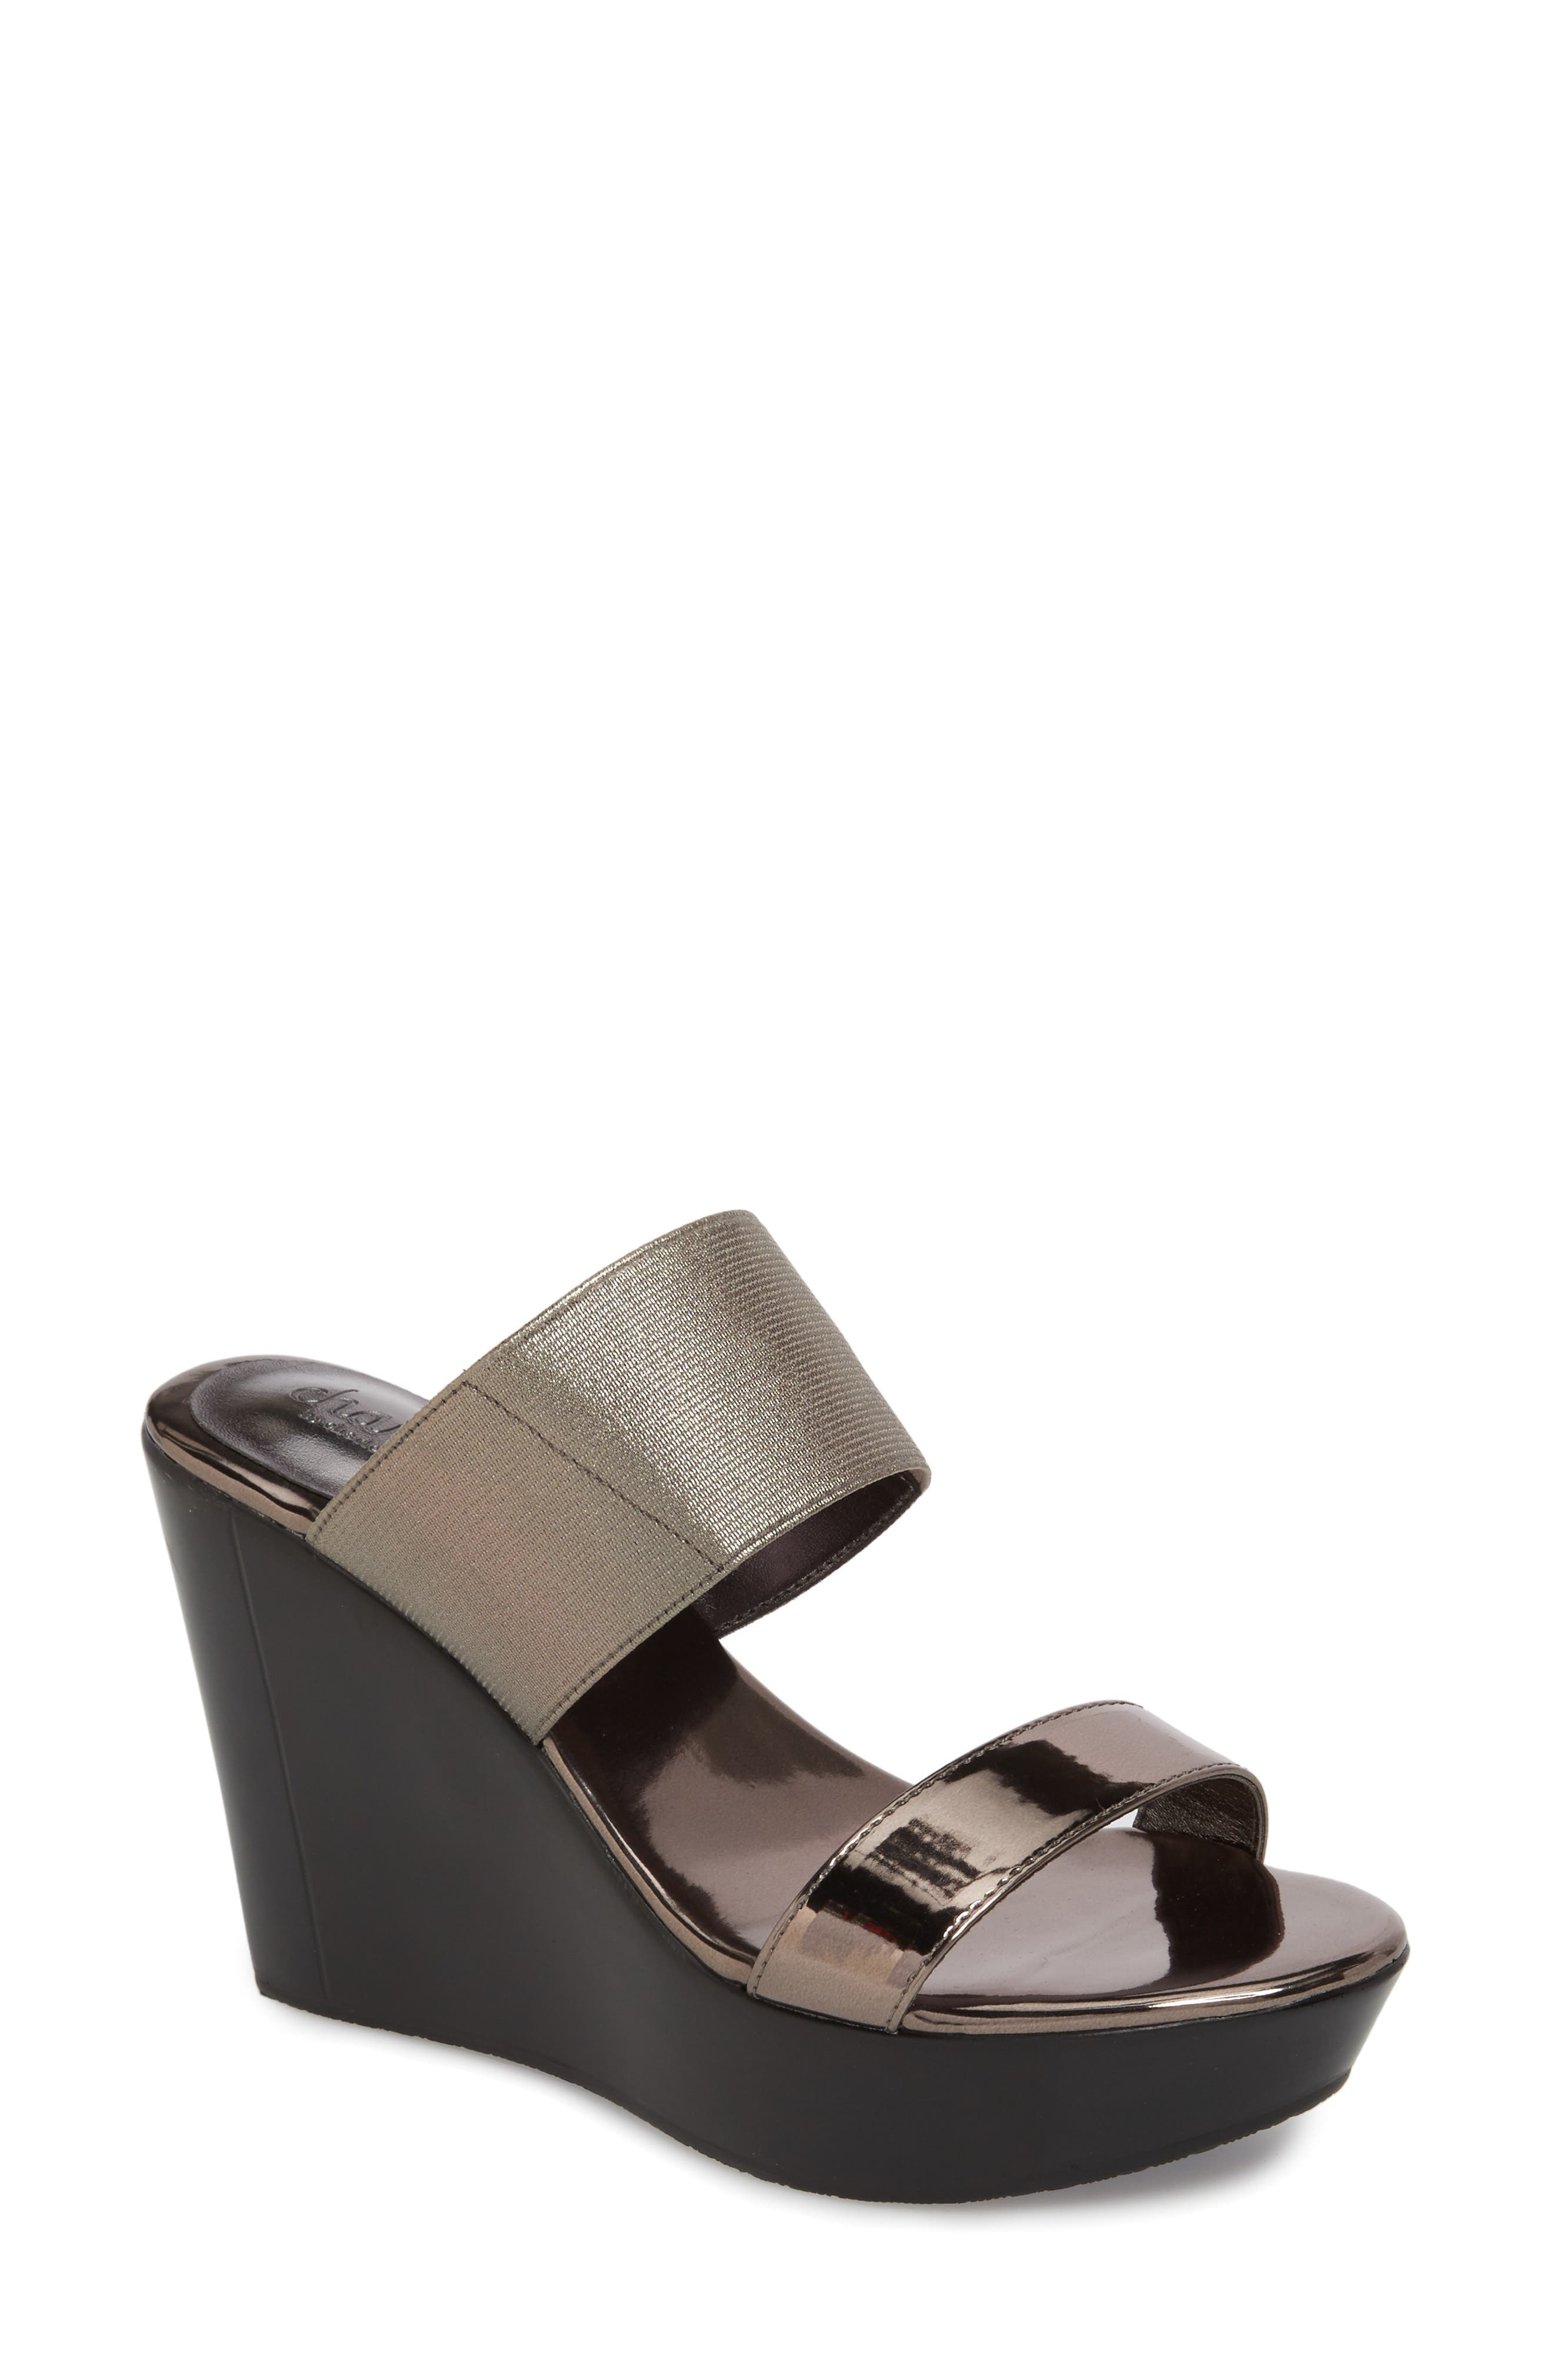 FIGHTER PLATFORM MULE SANDAL